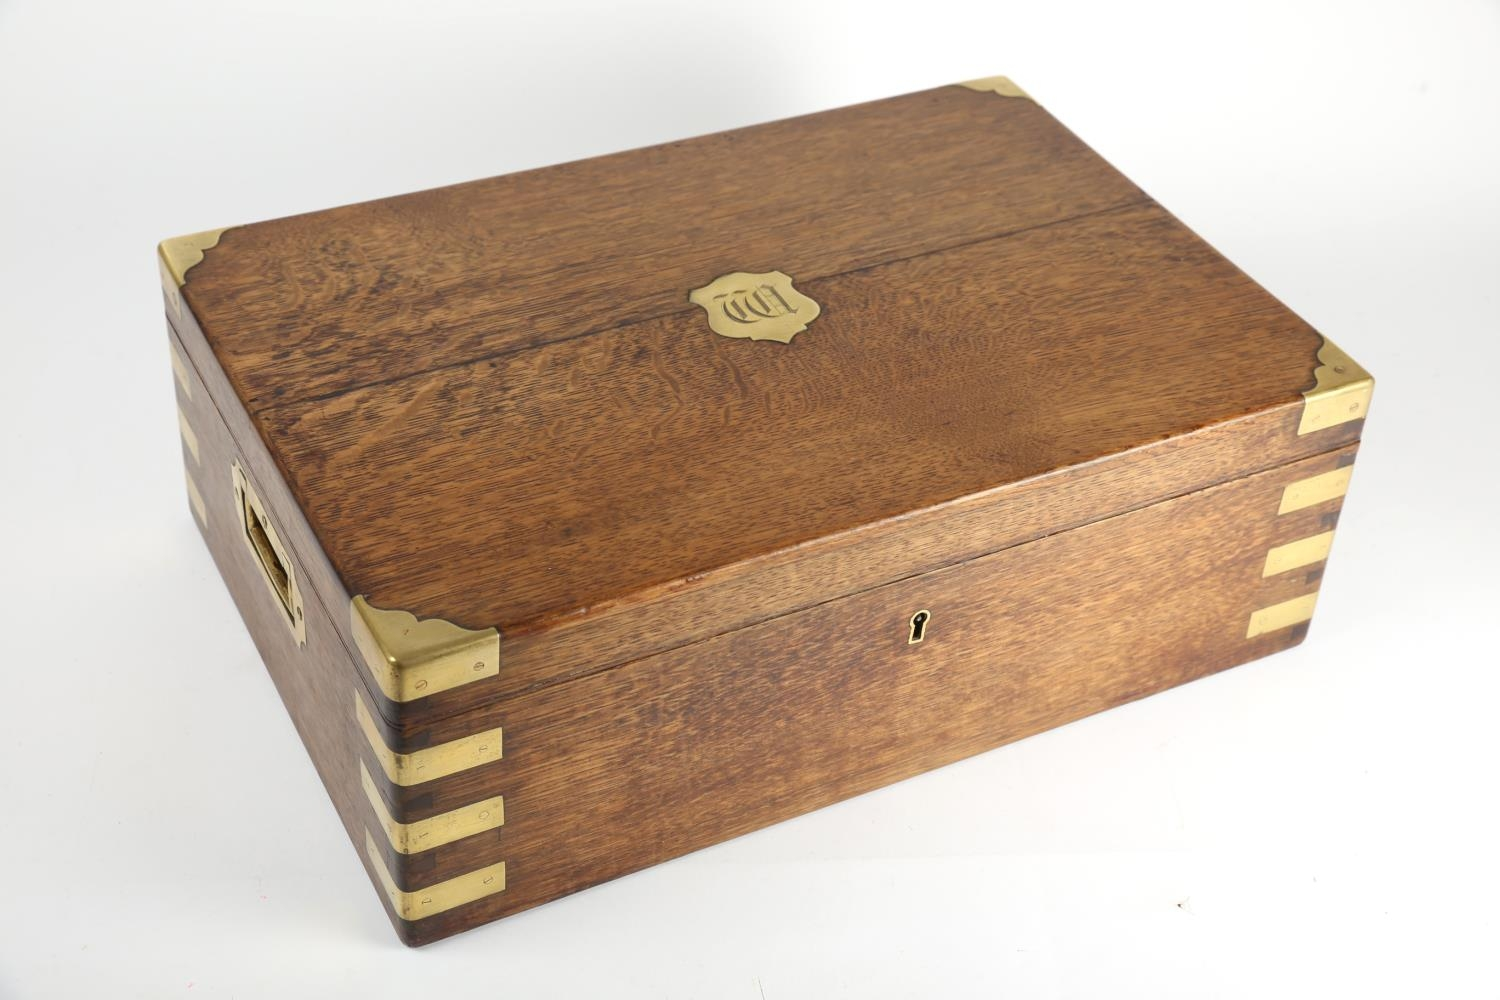 A 19th century brass-bound, oak military box, with recessed handles, the lid inset with a brass